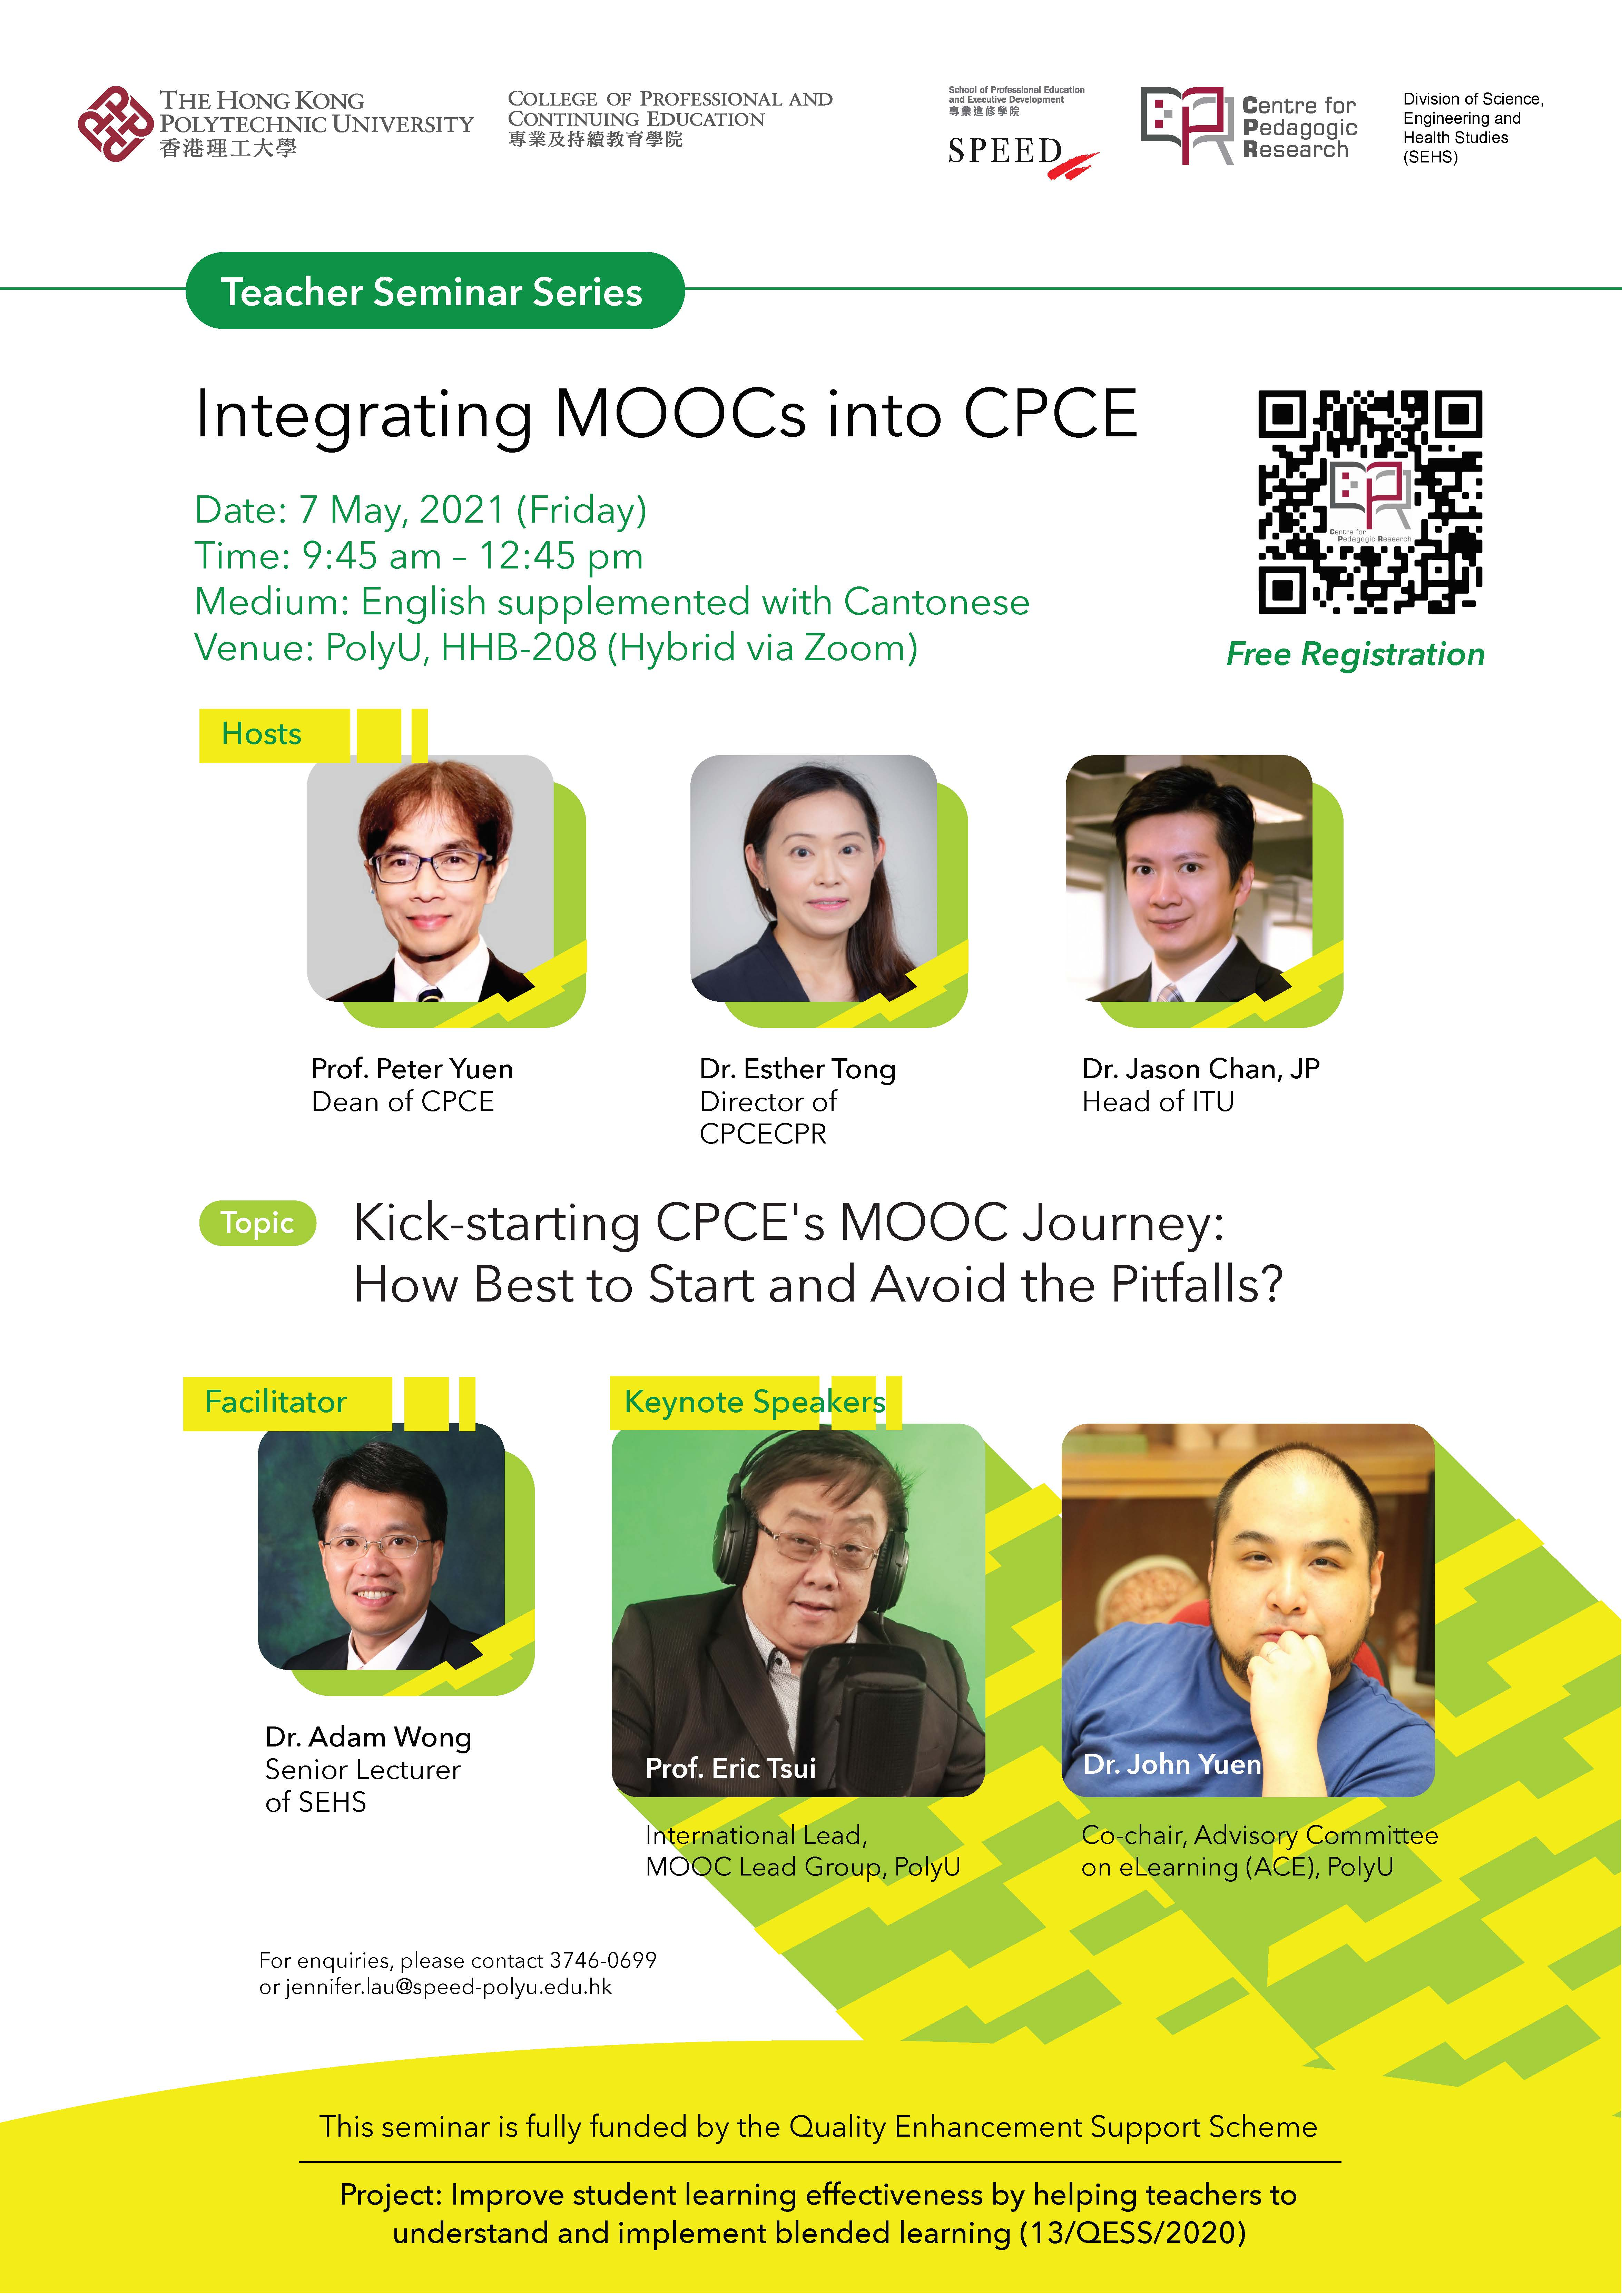 Integrating MOOCs into CPCE